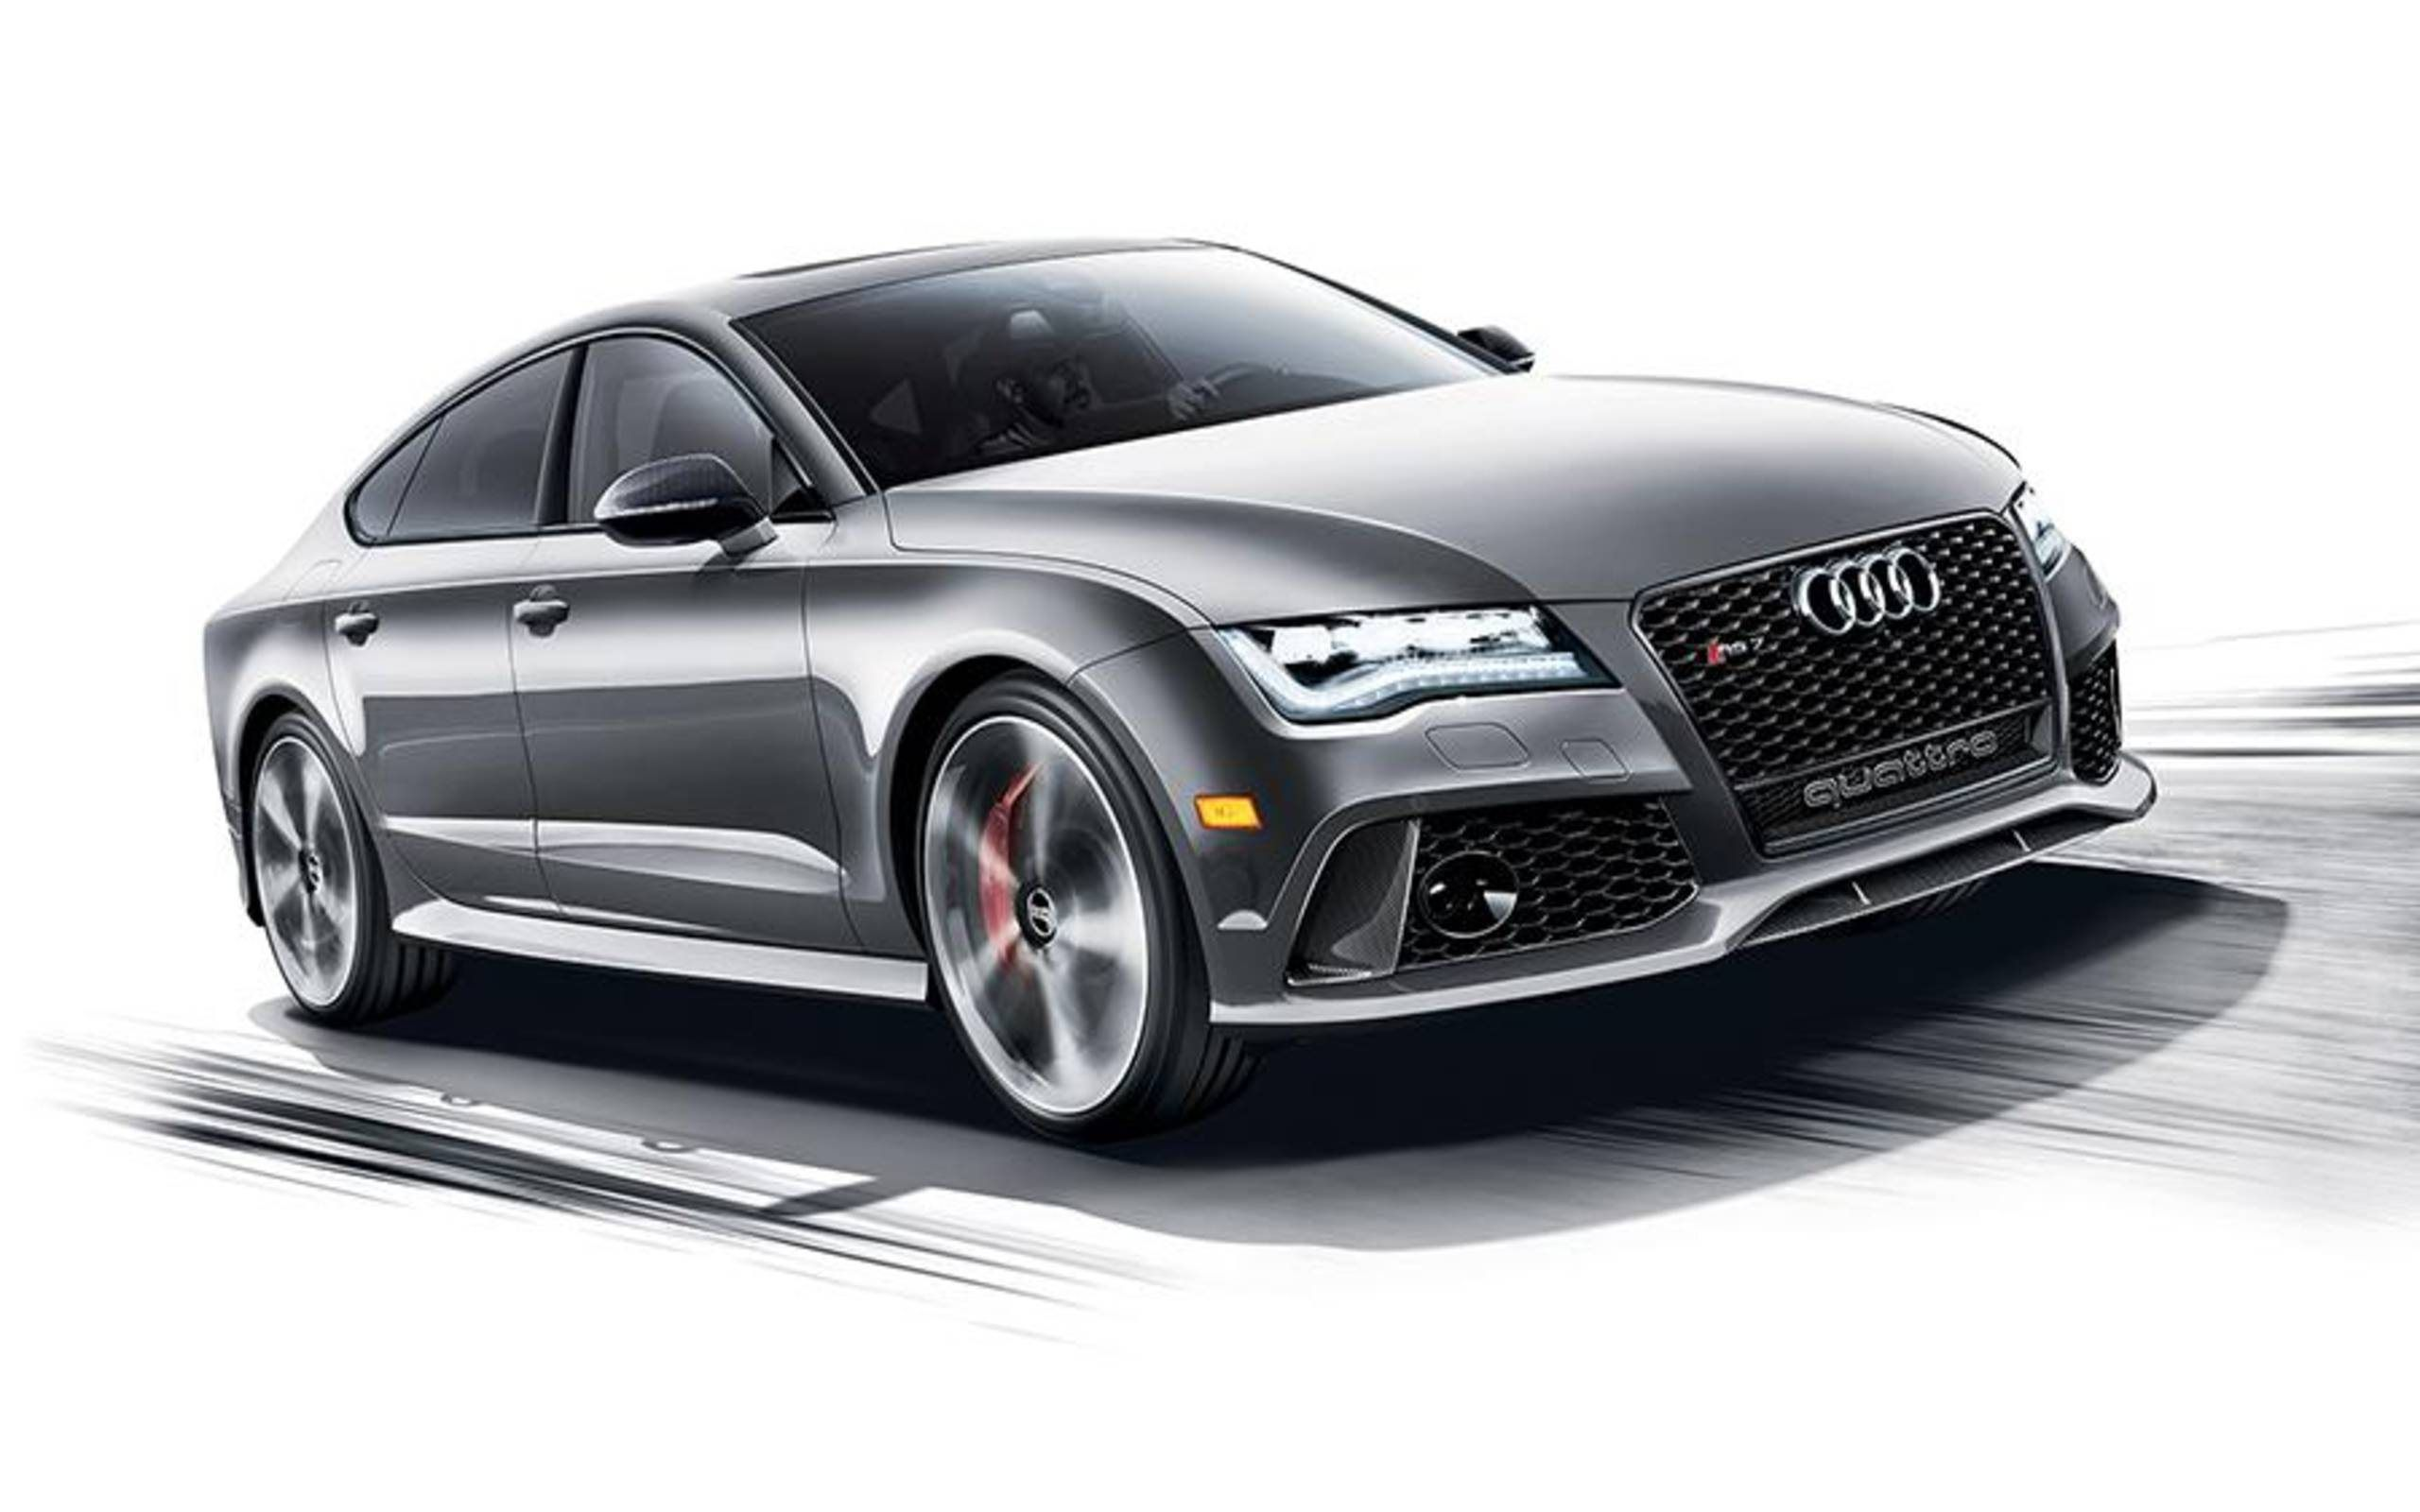 2020 Audi A5s Redesign and Concept in 2020 | Audi, Audi s5 ...